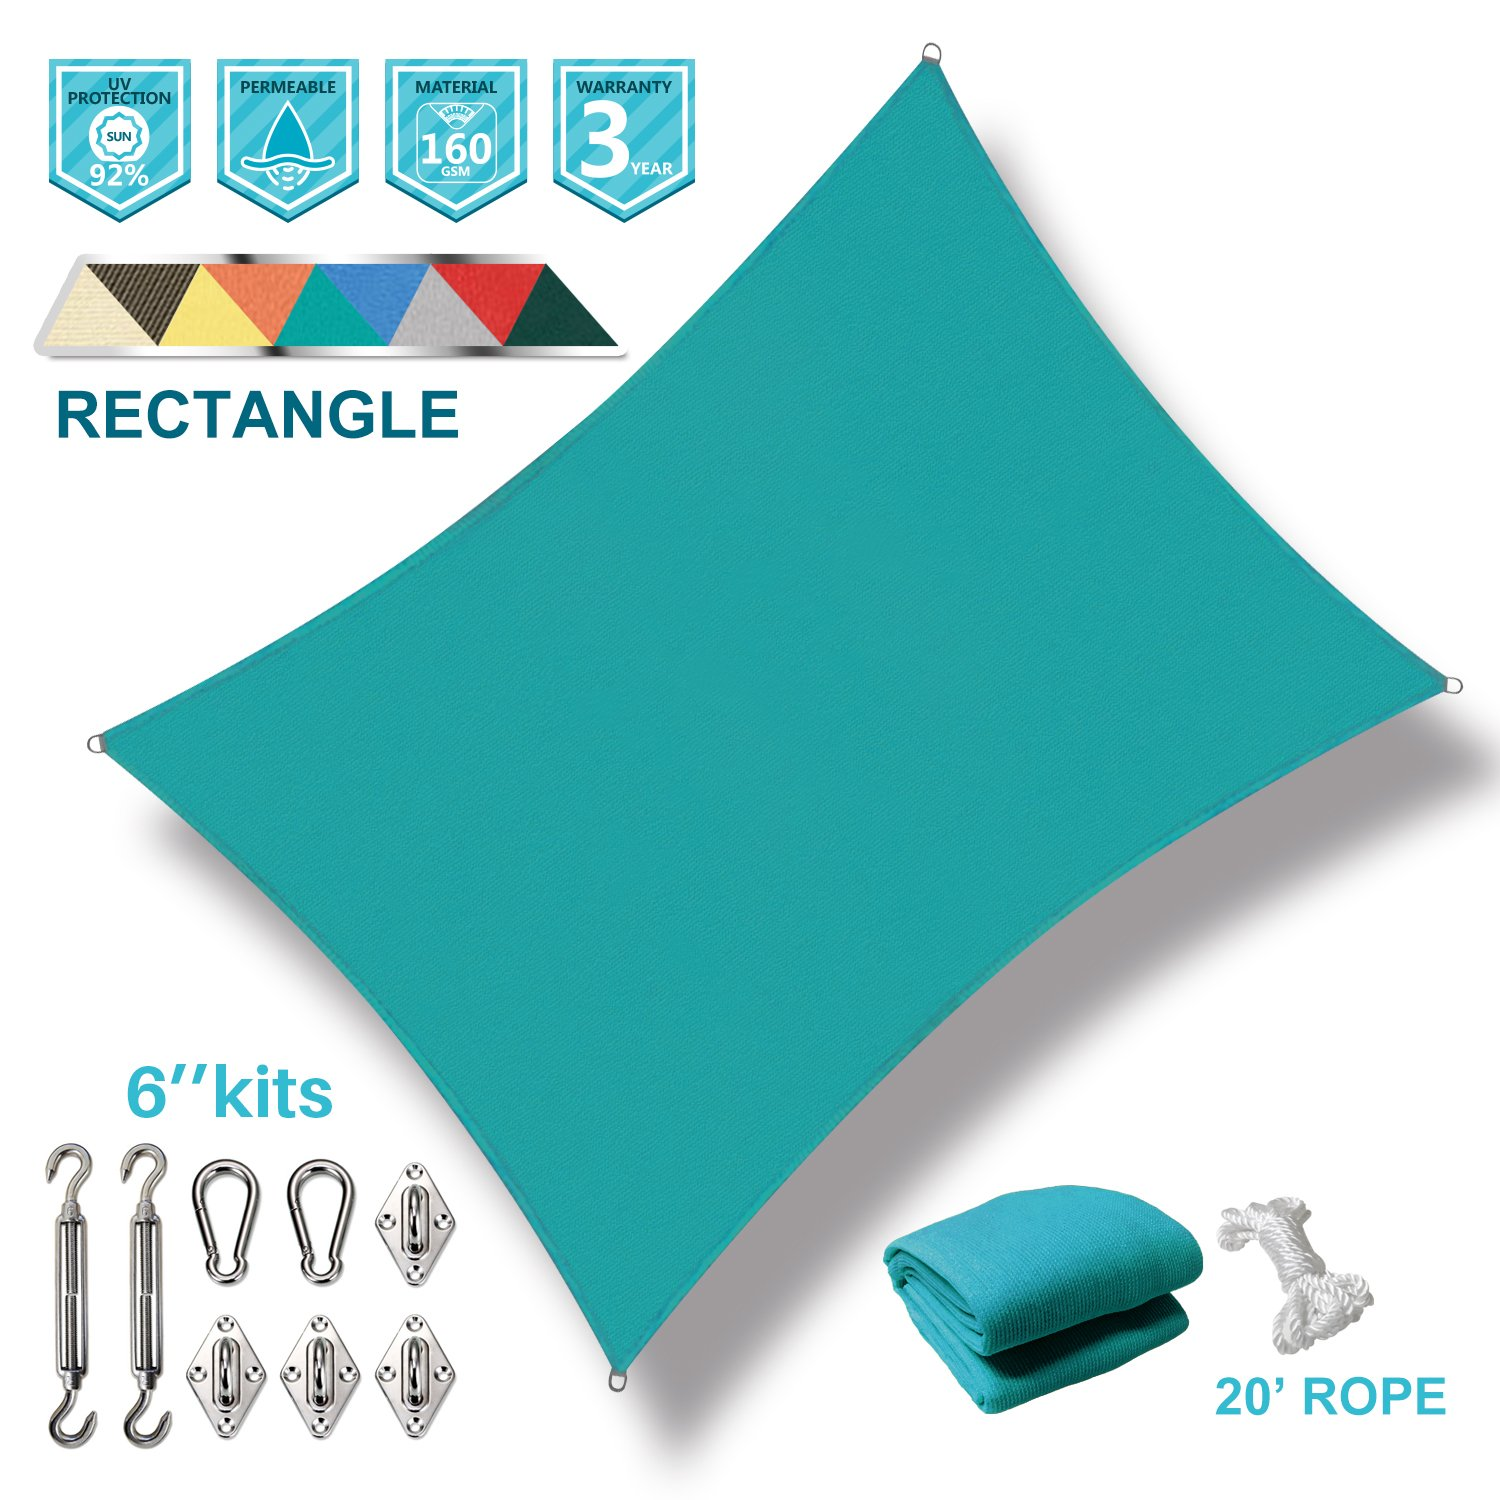 Coarbor 12' x 16' Rectangle Turquoise Green UV Block Sun Shade Sail with Stainless Steel Hardware Kit Perfect for Patio Outdoor Garden